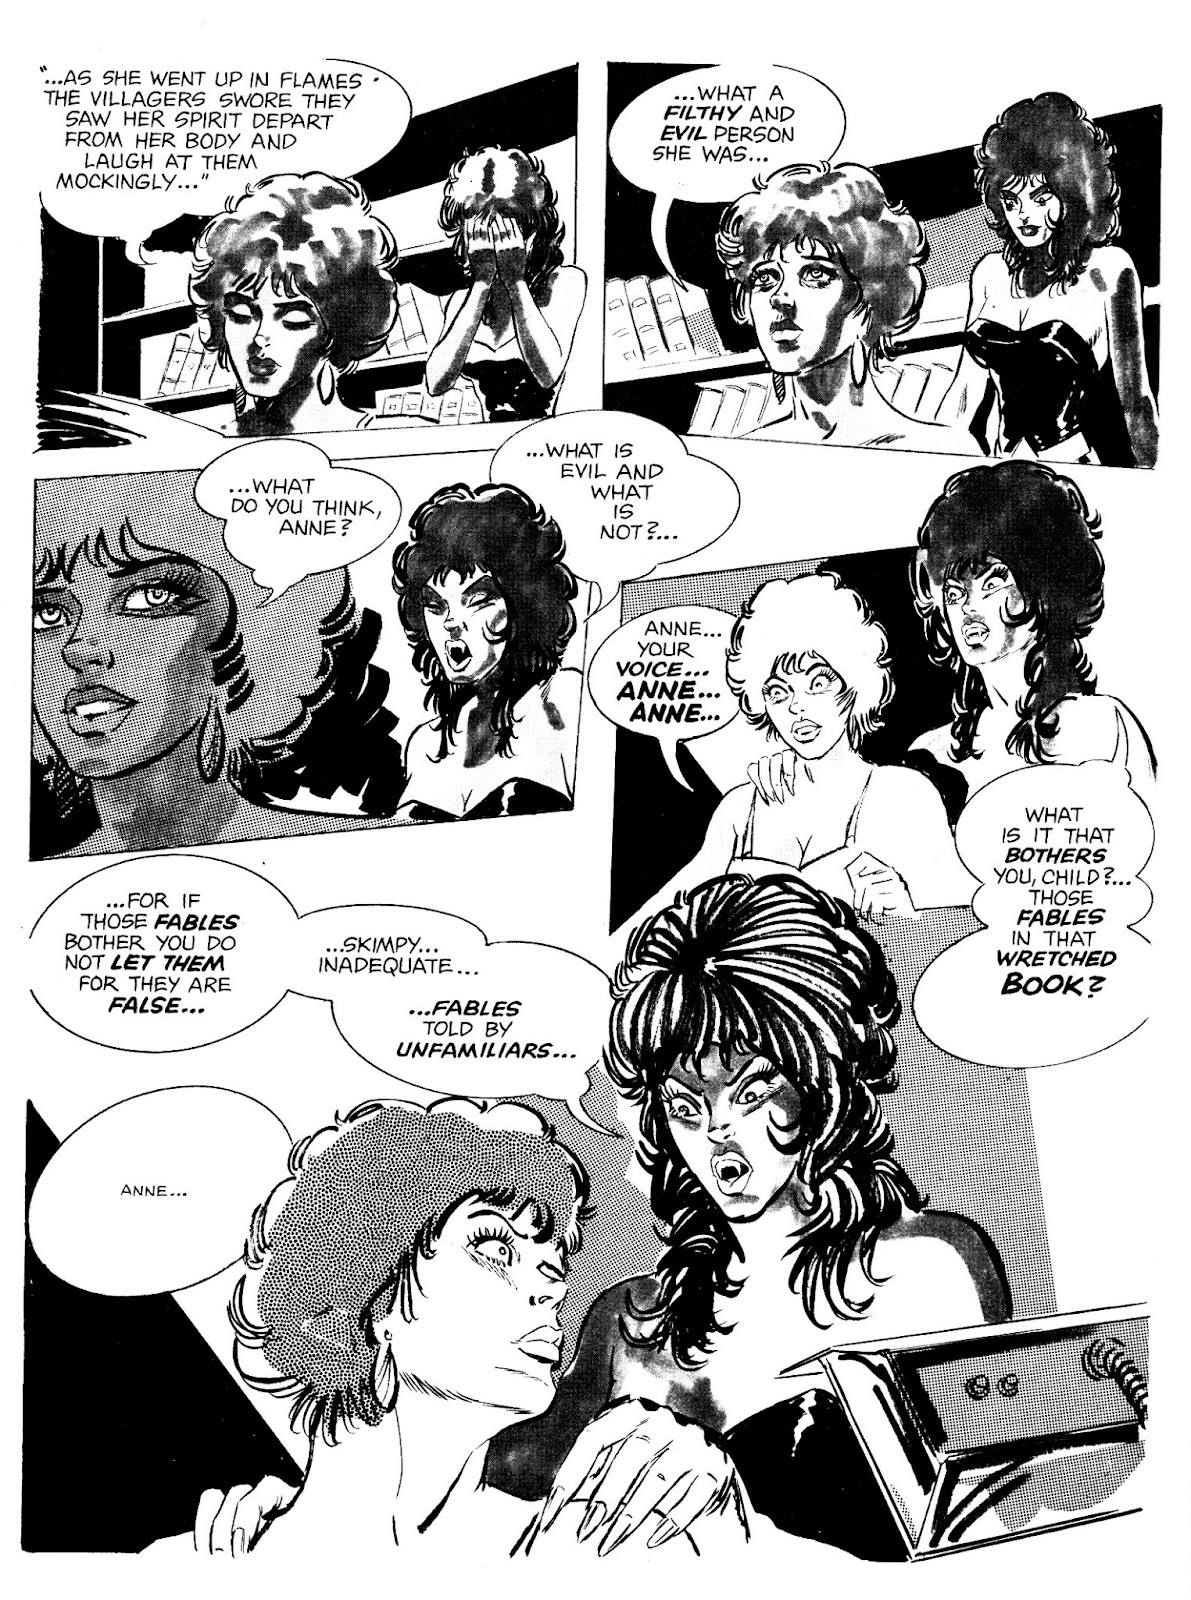 Scream (1973) issue 3 - Page 30